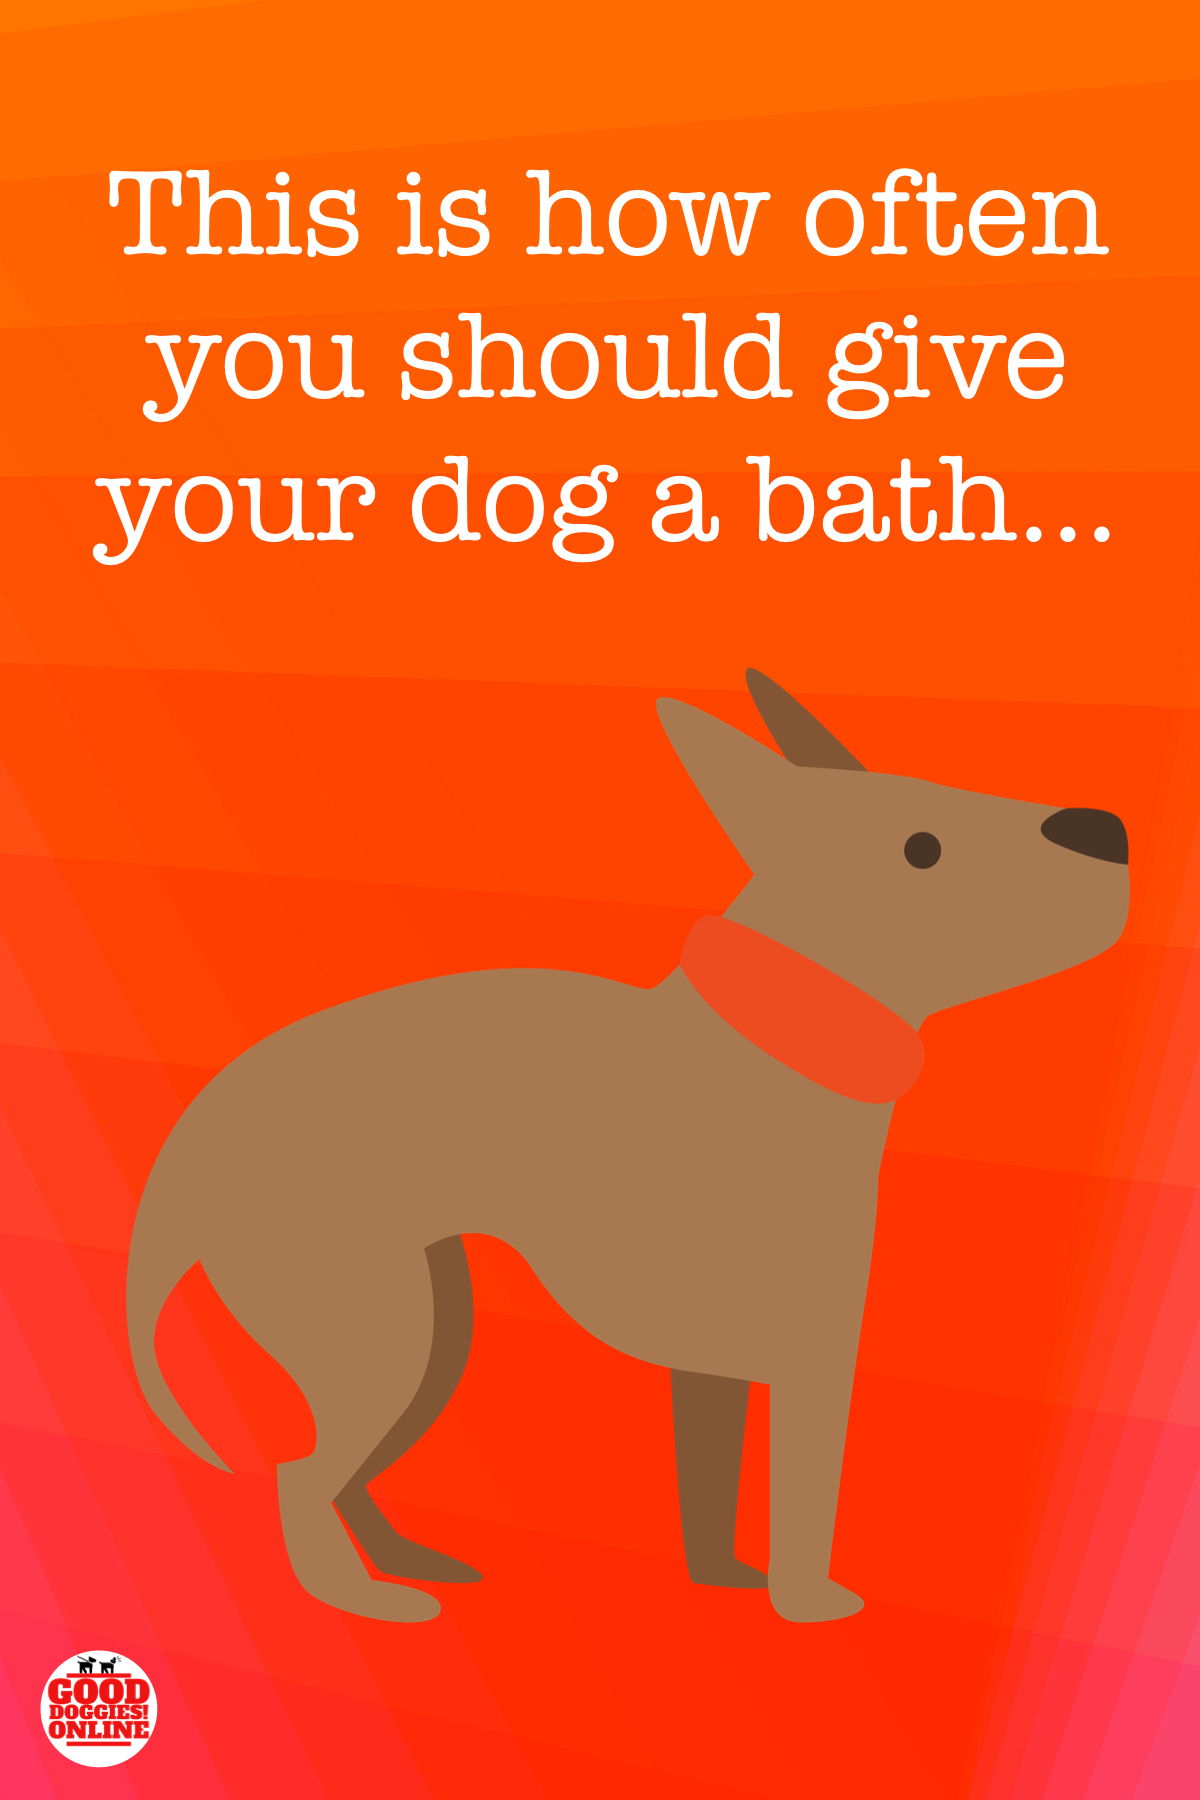 How Often Should You Bathe A Dog Check Out These Dog Care Tips And Find Out More Dogs Good Doggies Online Dogs Pet Parent